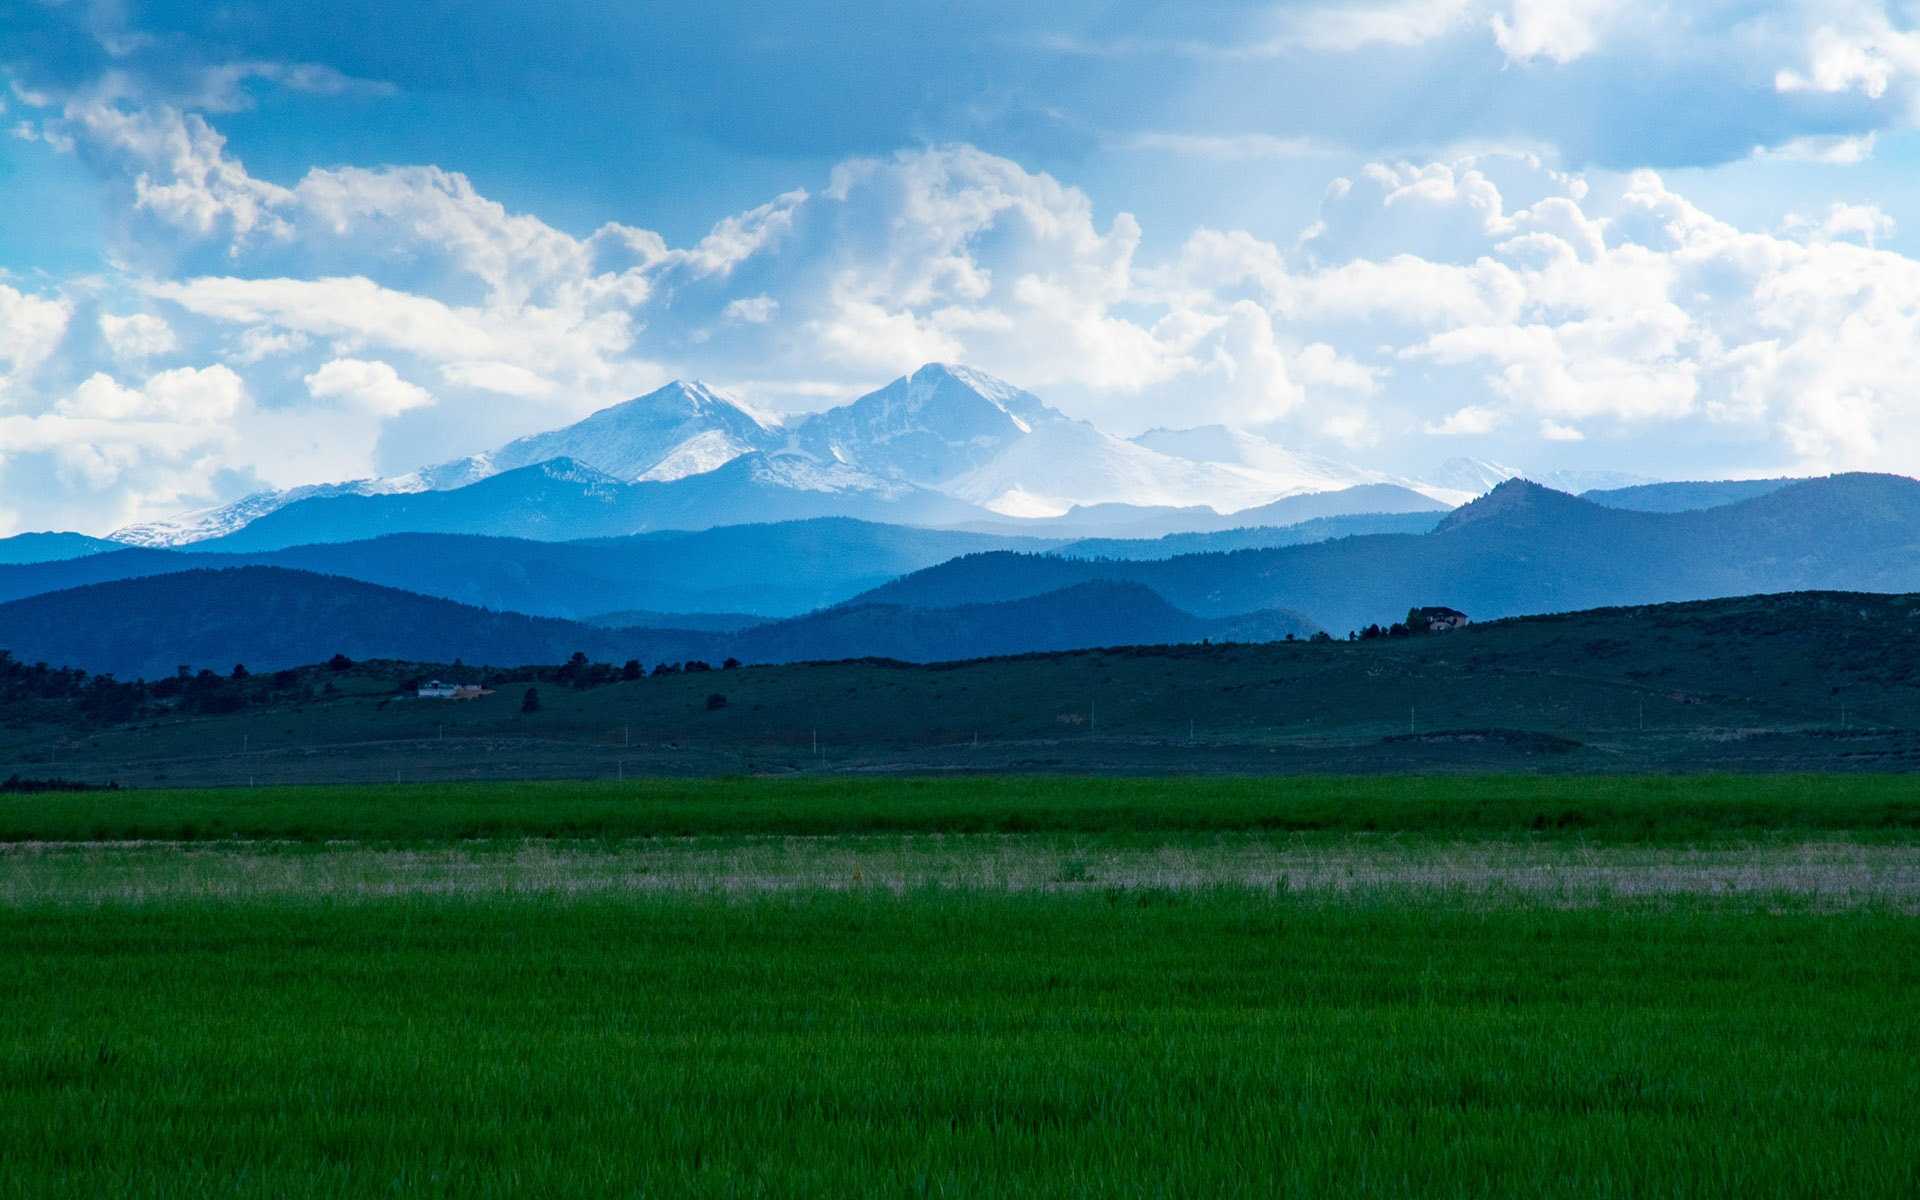 Rural green grass pasture in the foreground with mountains and blue sky and white clouds in the background